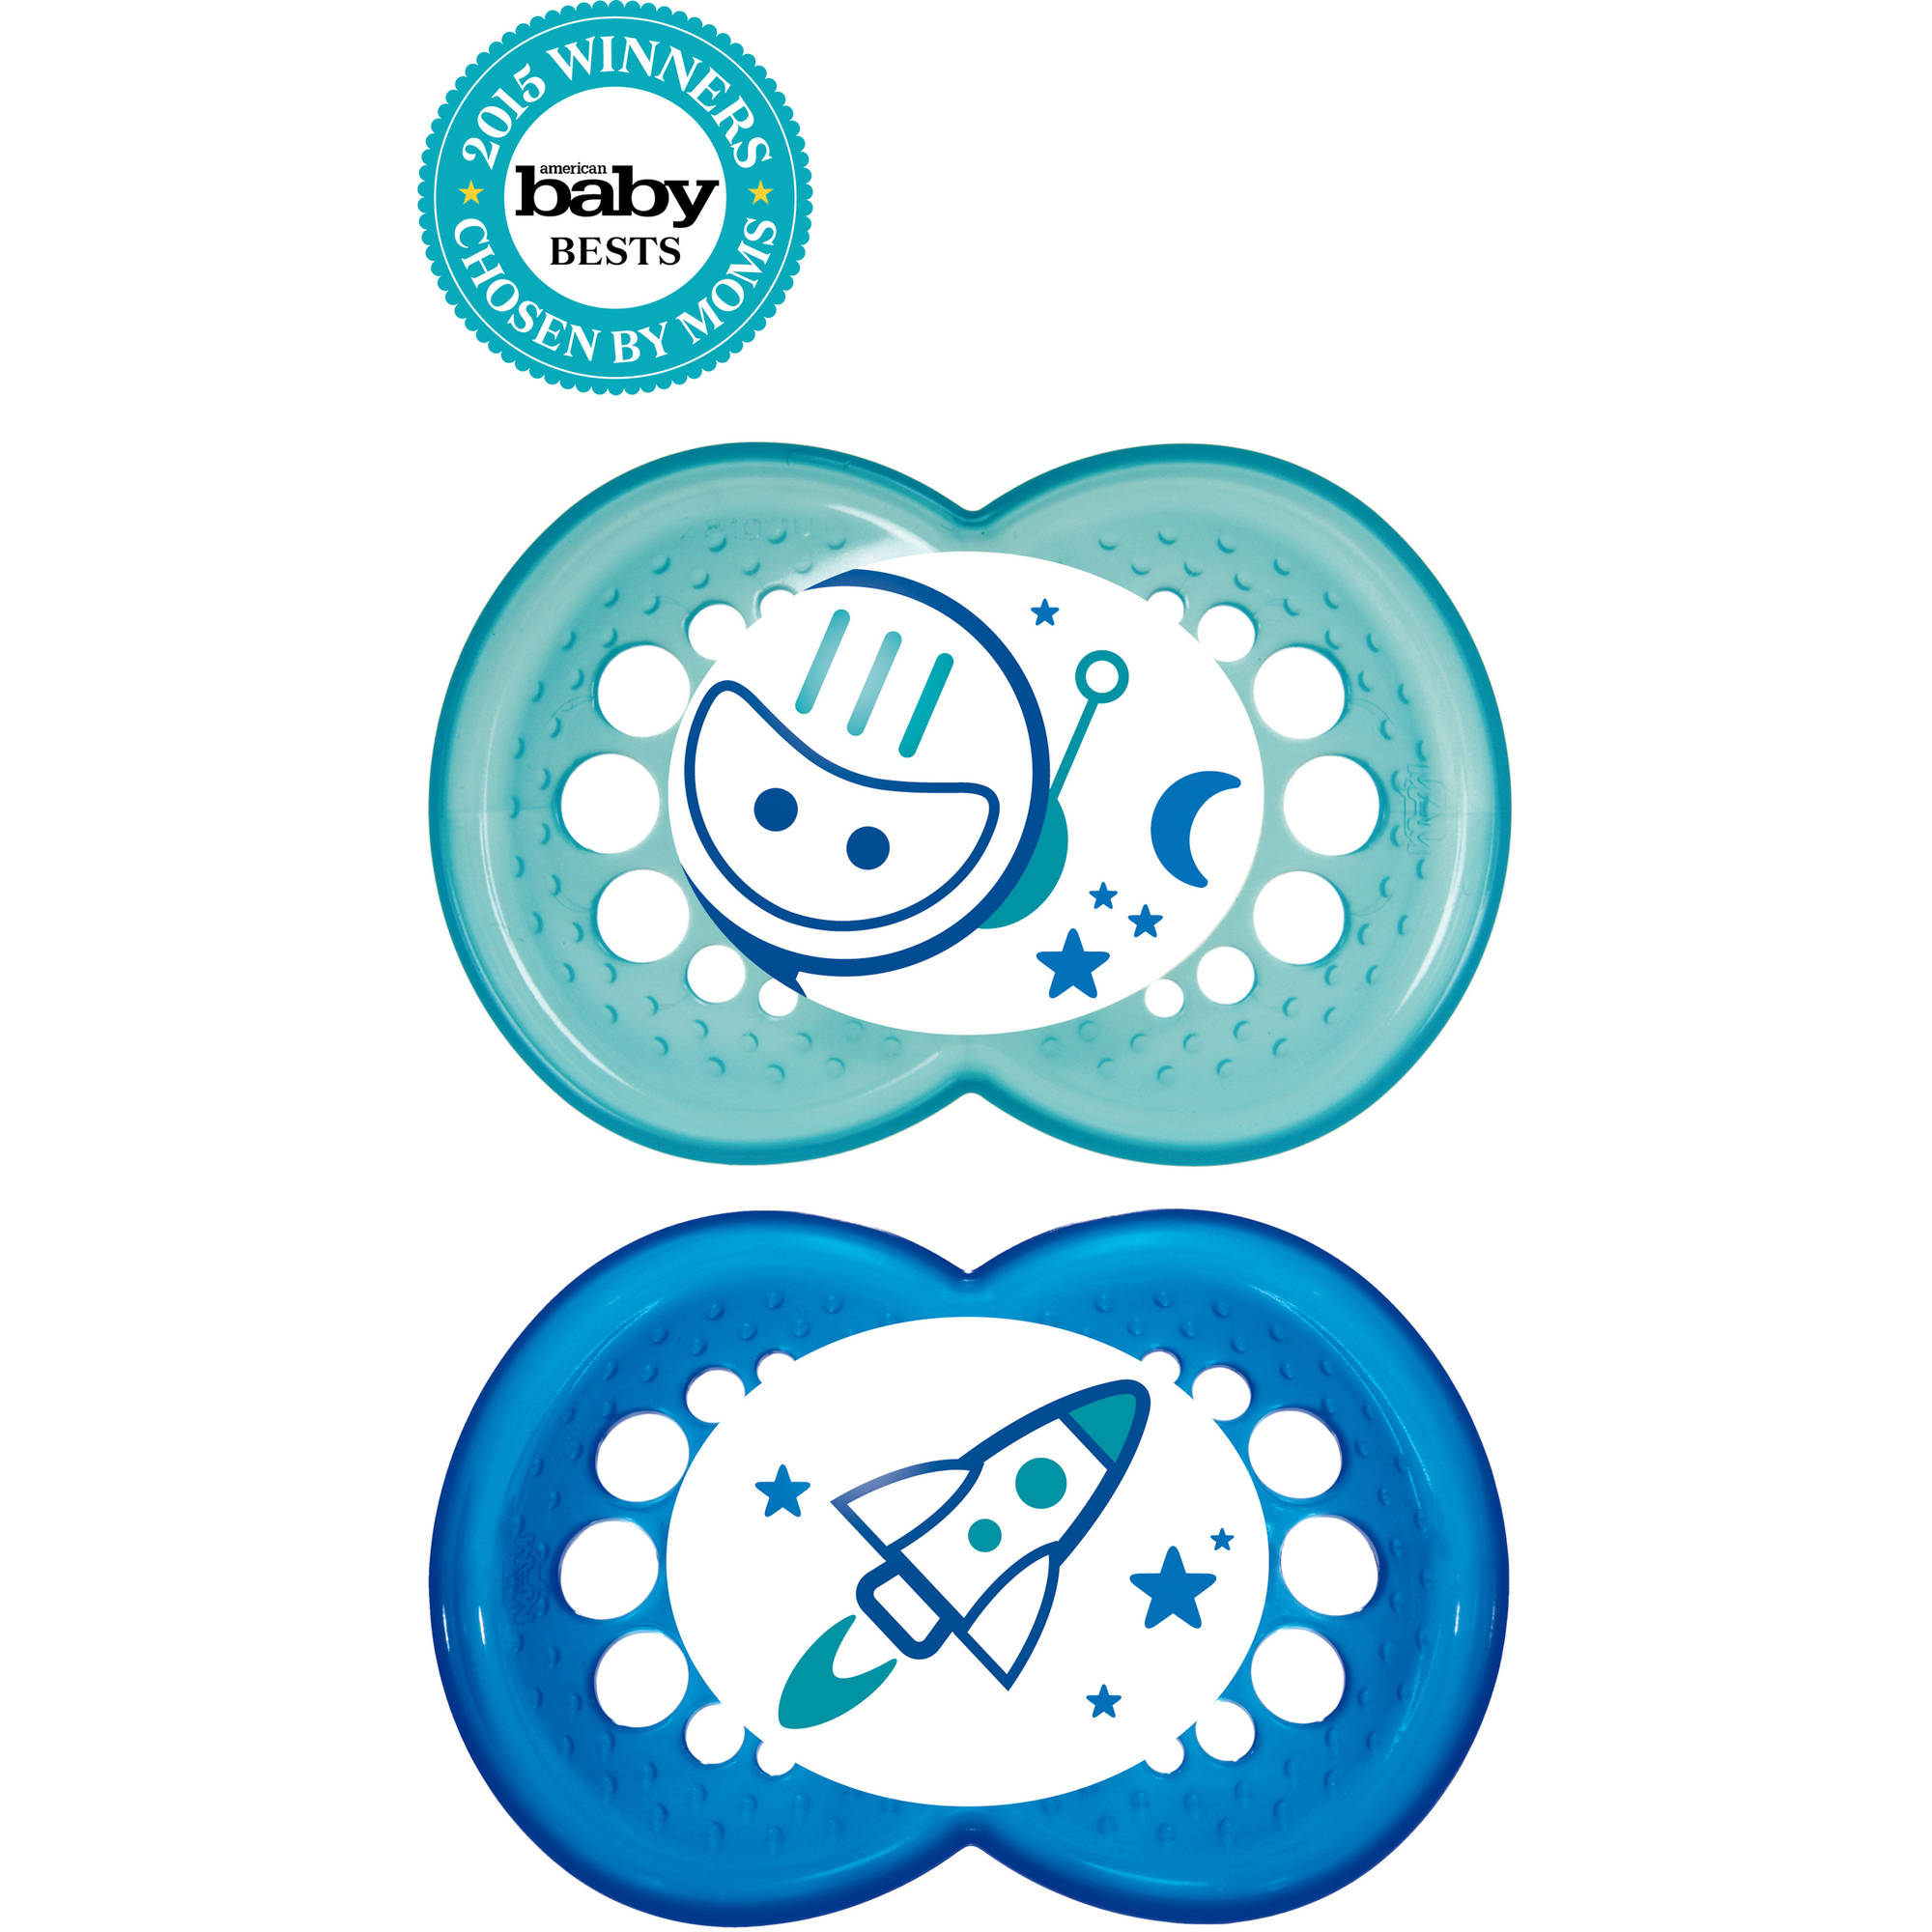 MAM Glow in the Dark Night Orthodontic Pacifier, 6+ Months, 2-Count, Boy